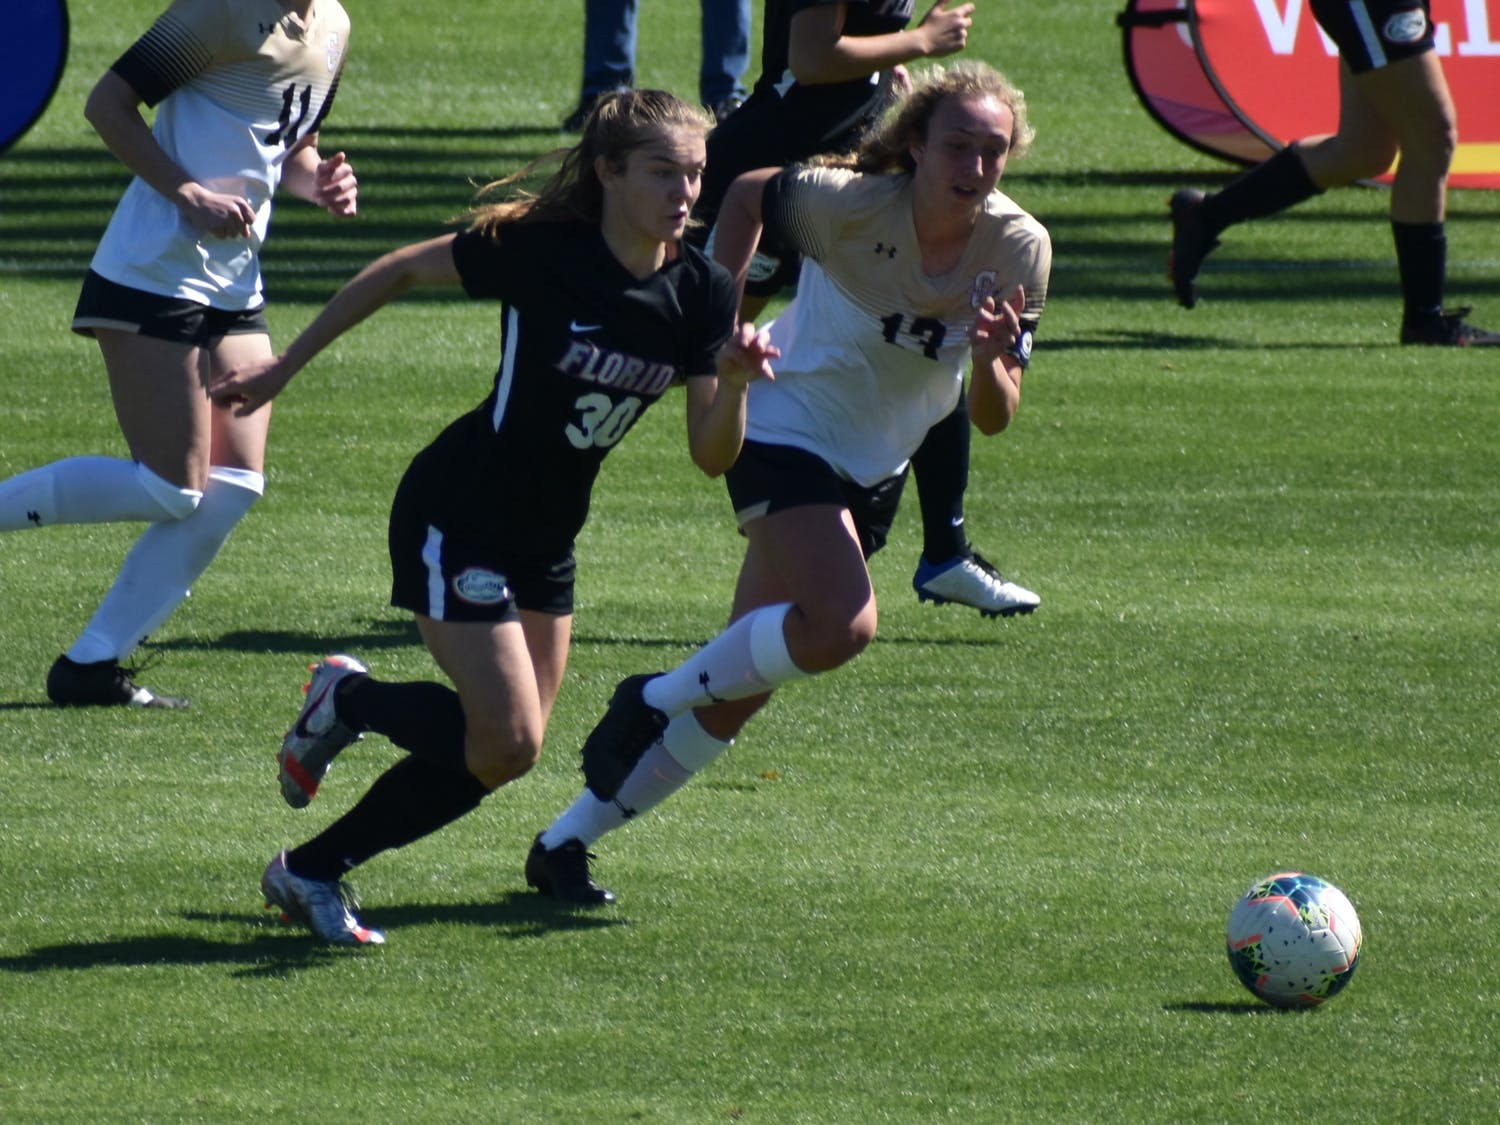 Florida striker Beata Olsson dribbles past a defender Feb. 20 against College of Charleston. The Swedish international scored an early equalizer Monday.